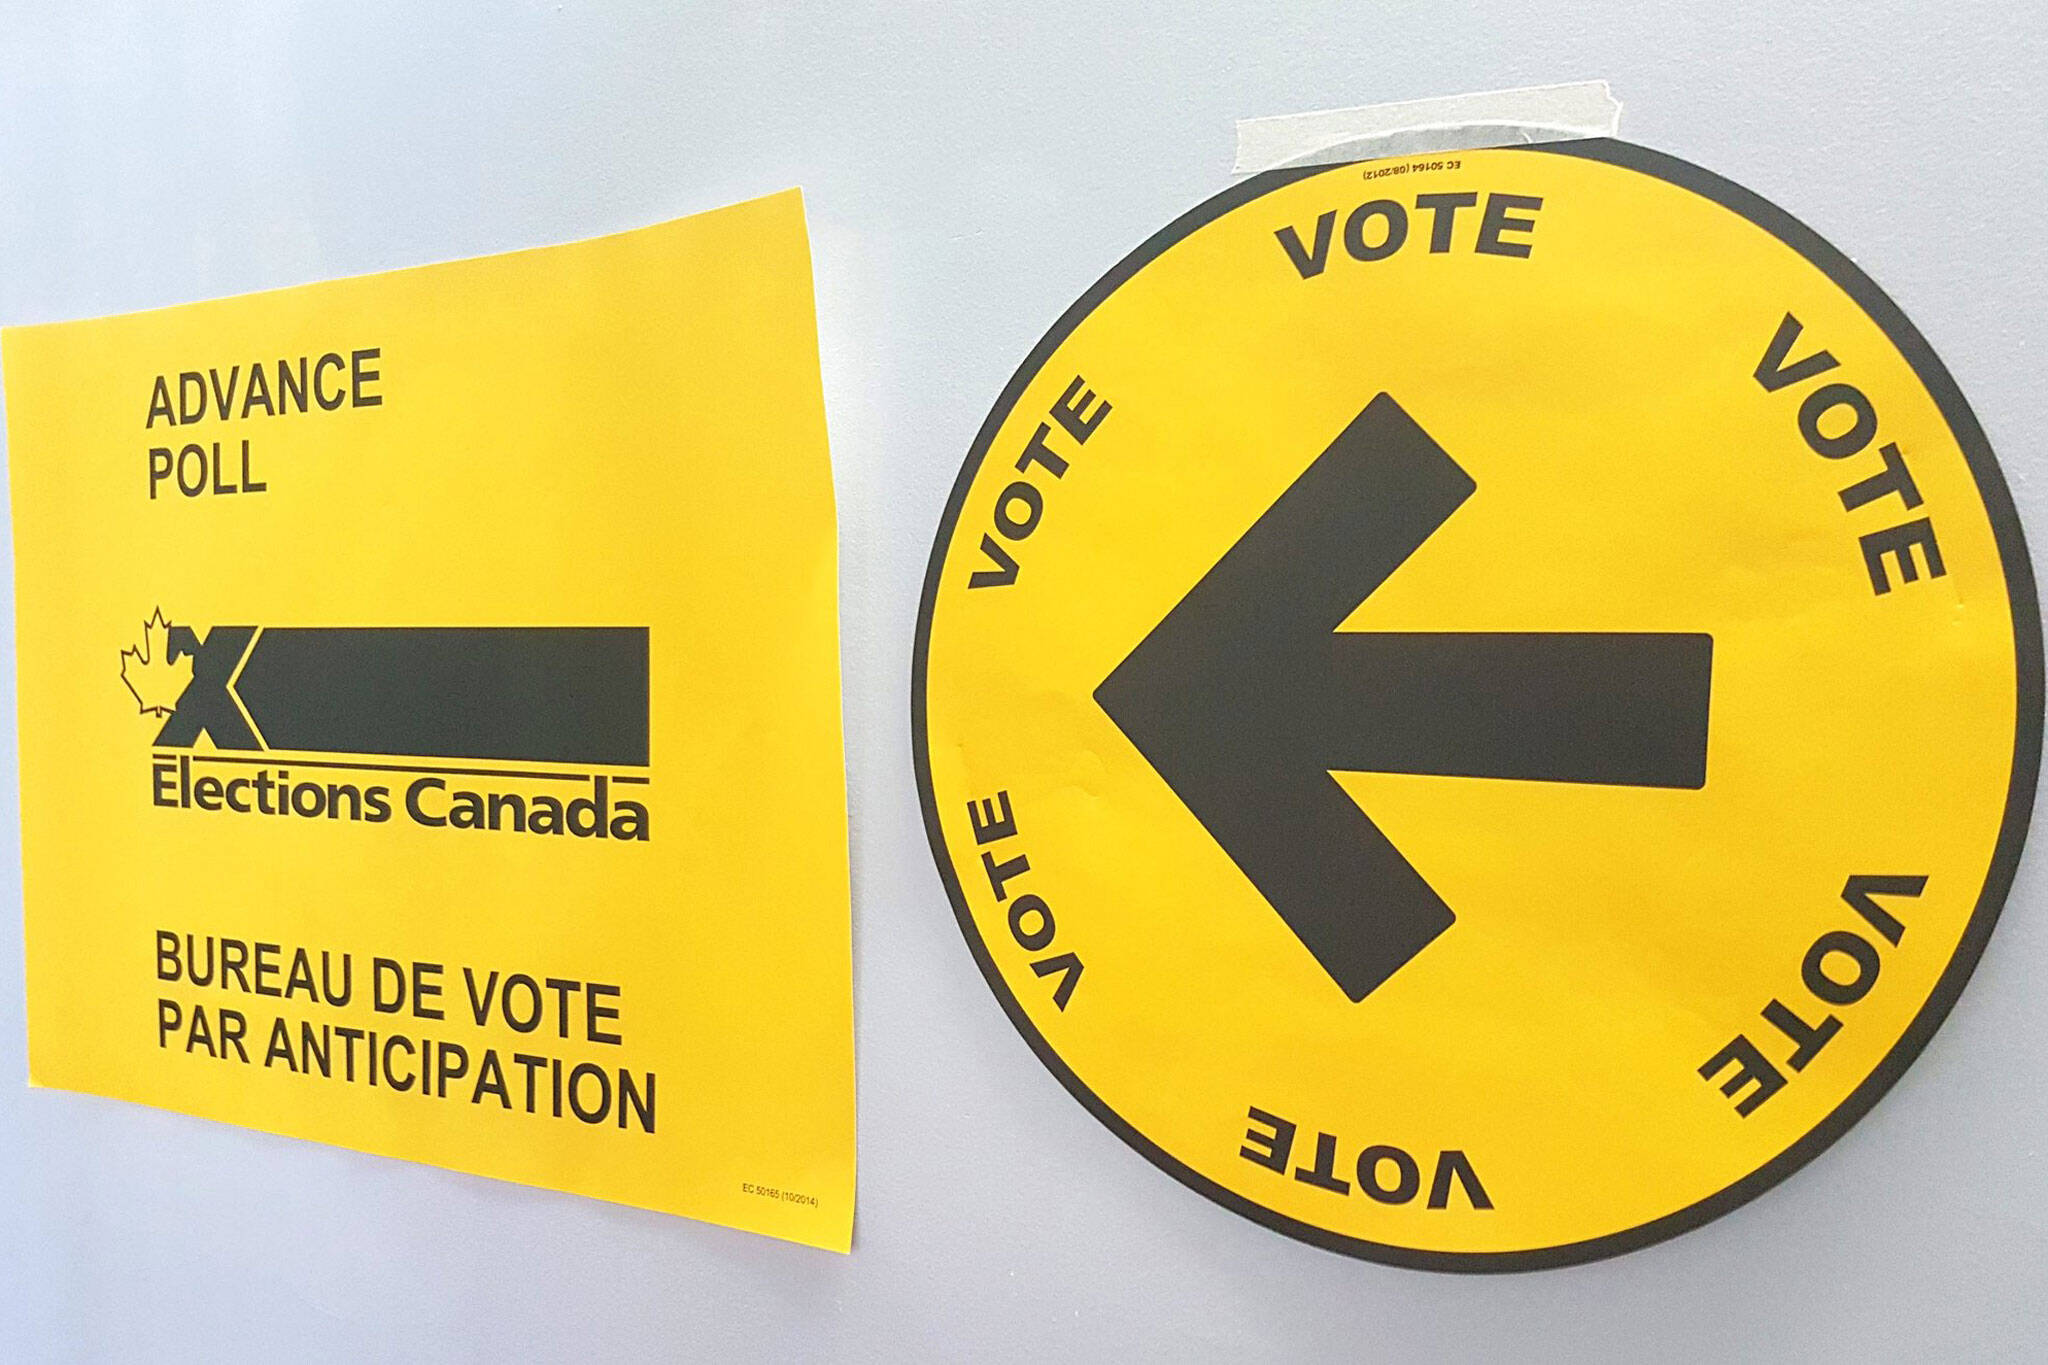 Early Voting In Toronto For The 2019 Federal Election In Canada